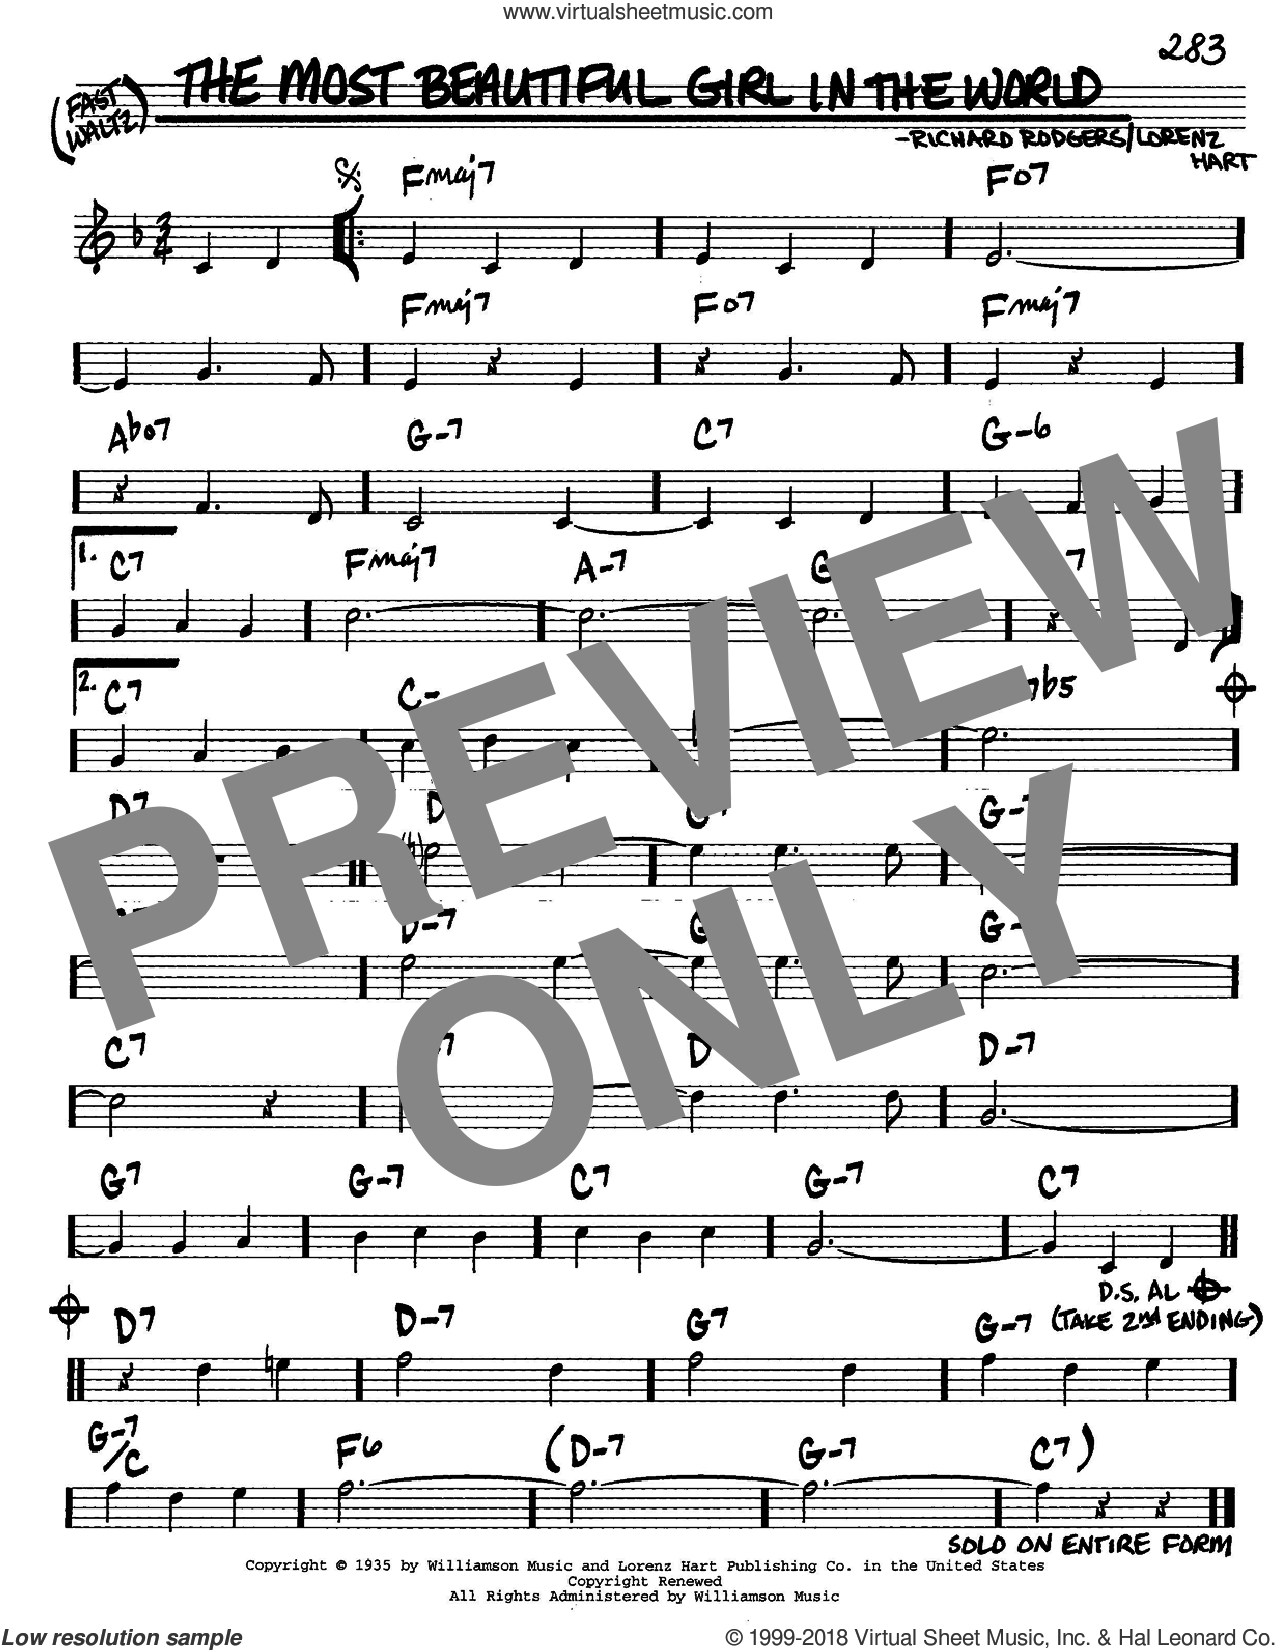 The Most Beautiful Girl In The World sheet music for voice and other instruments (C) by Richard Rodgers